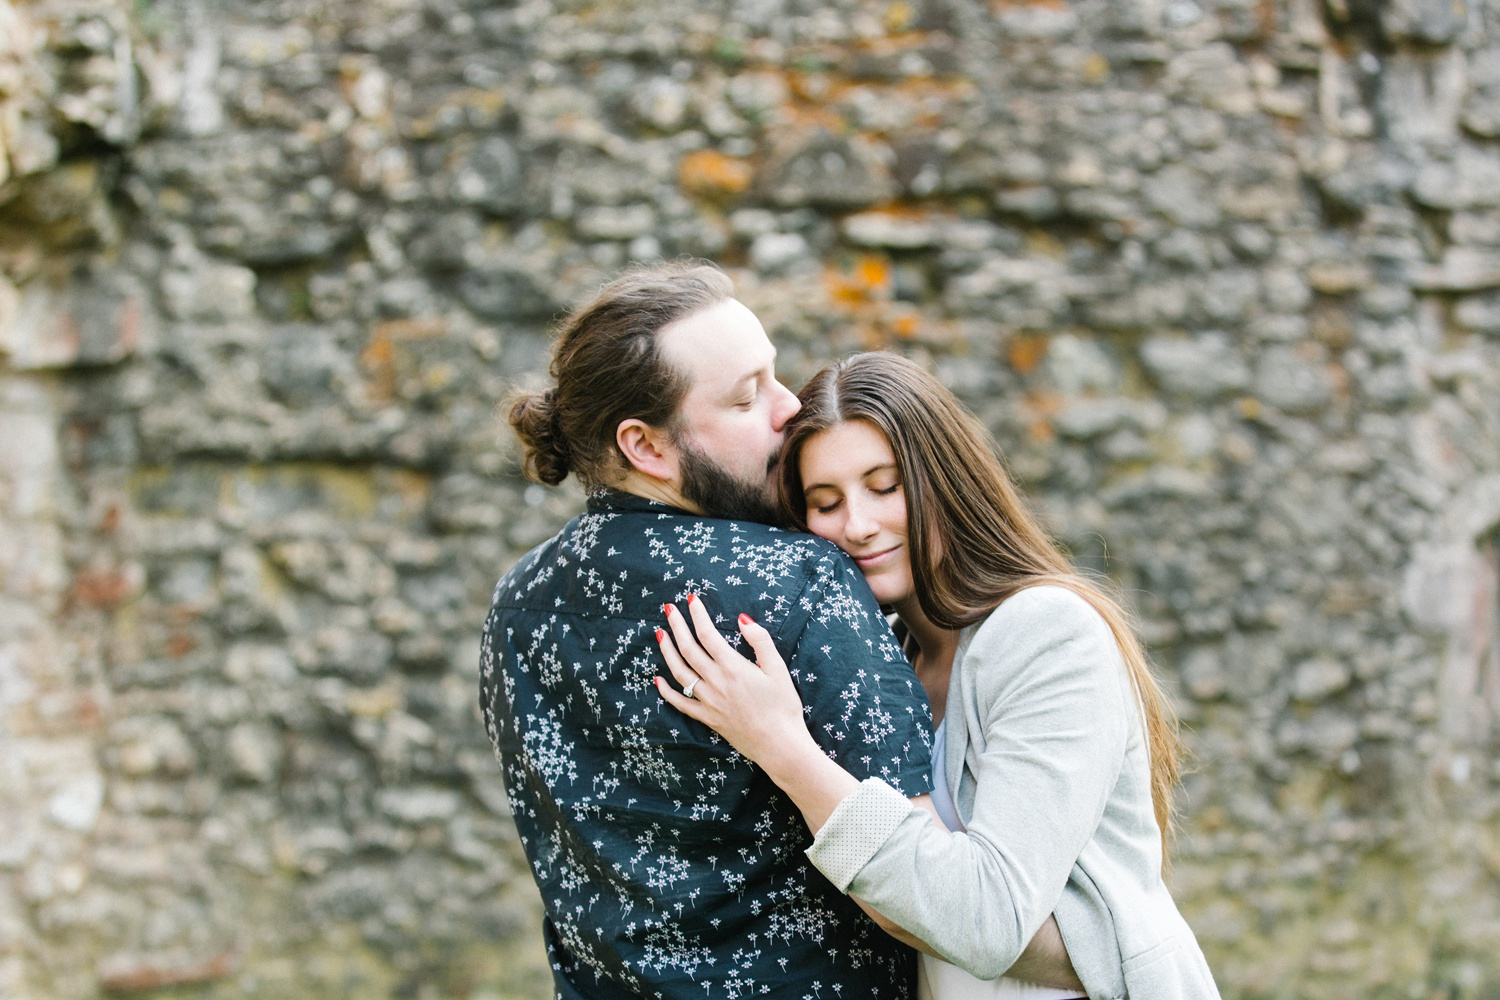 golden hour,hampshire wedding photographer,kiss,netley abbey,